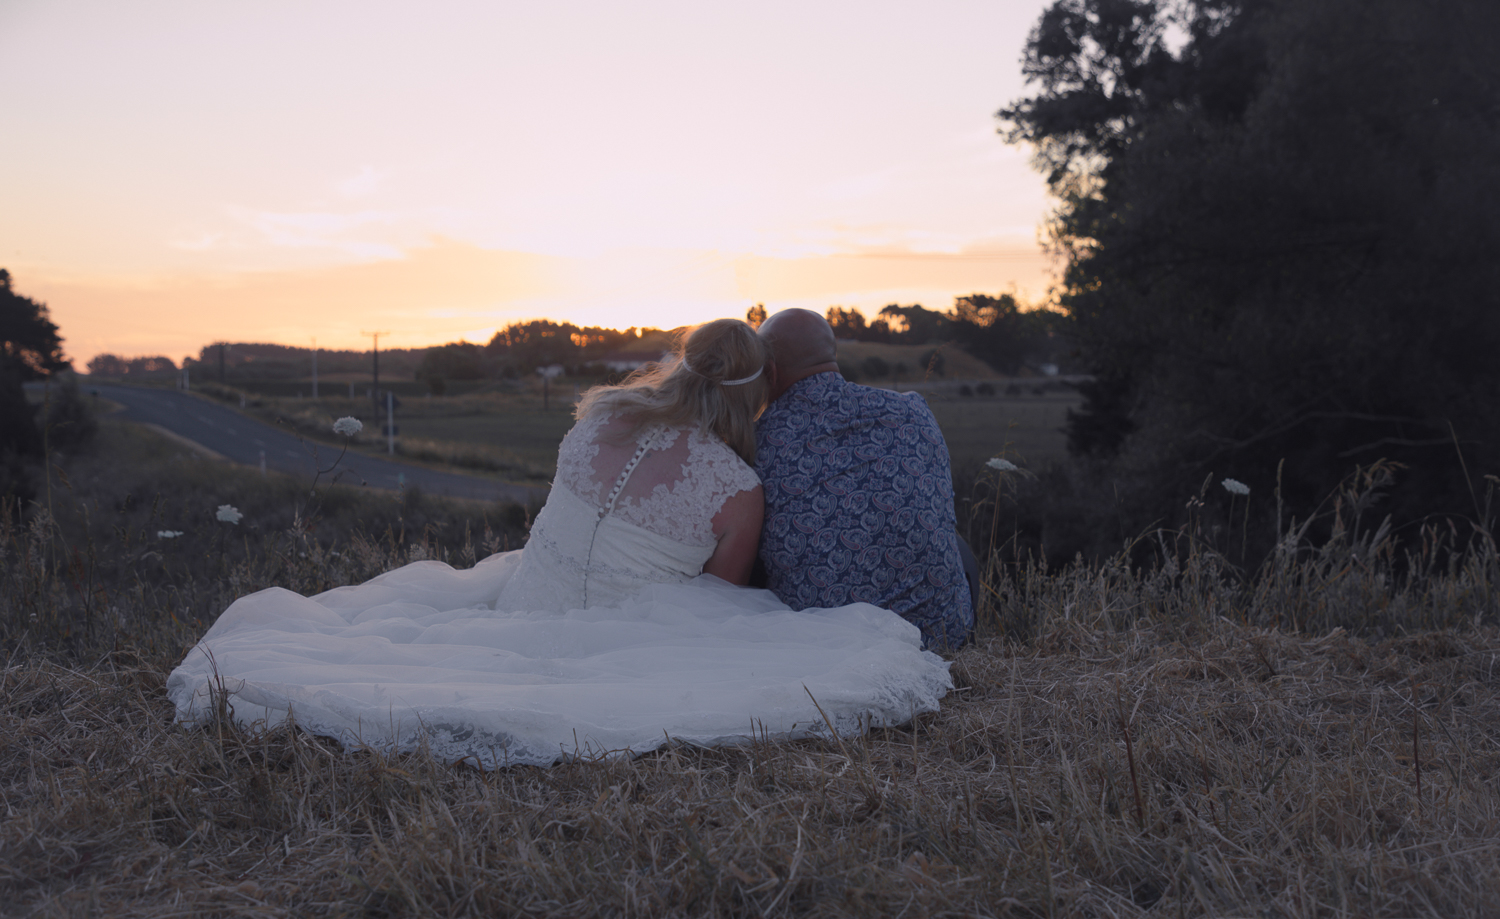 wedding-photography-bride-and-groom-watching-sunset-together.jpg